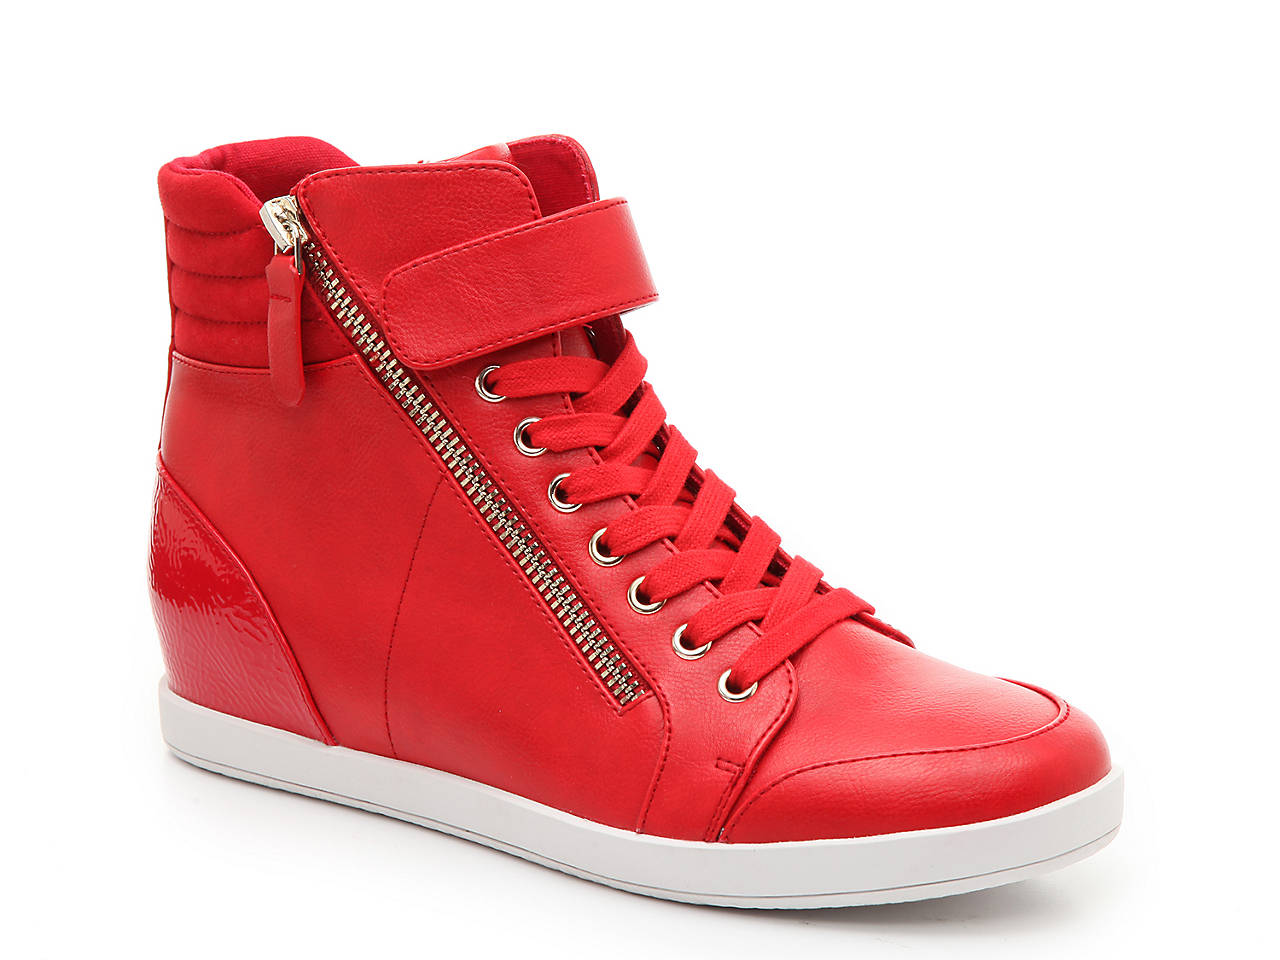 475c3e878 Mix No. 6 Gwelia Wedge Sneaker Women s Shoes